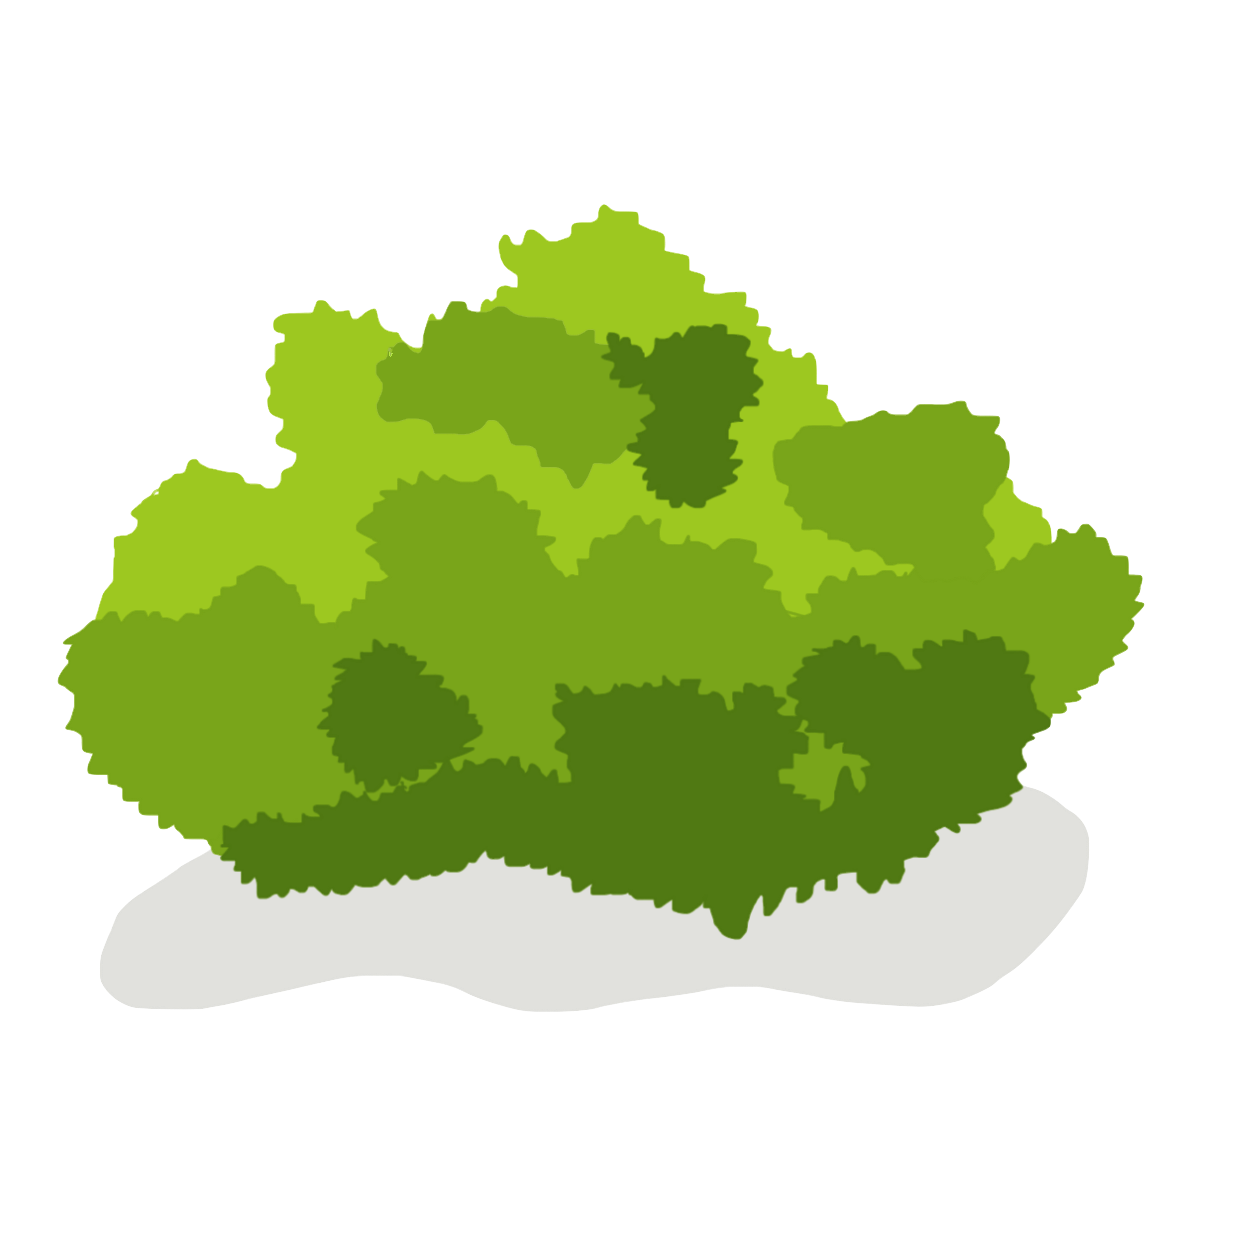 Shrub clipart grass Shrub drawings svg Shrub Shrub